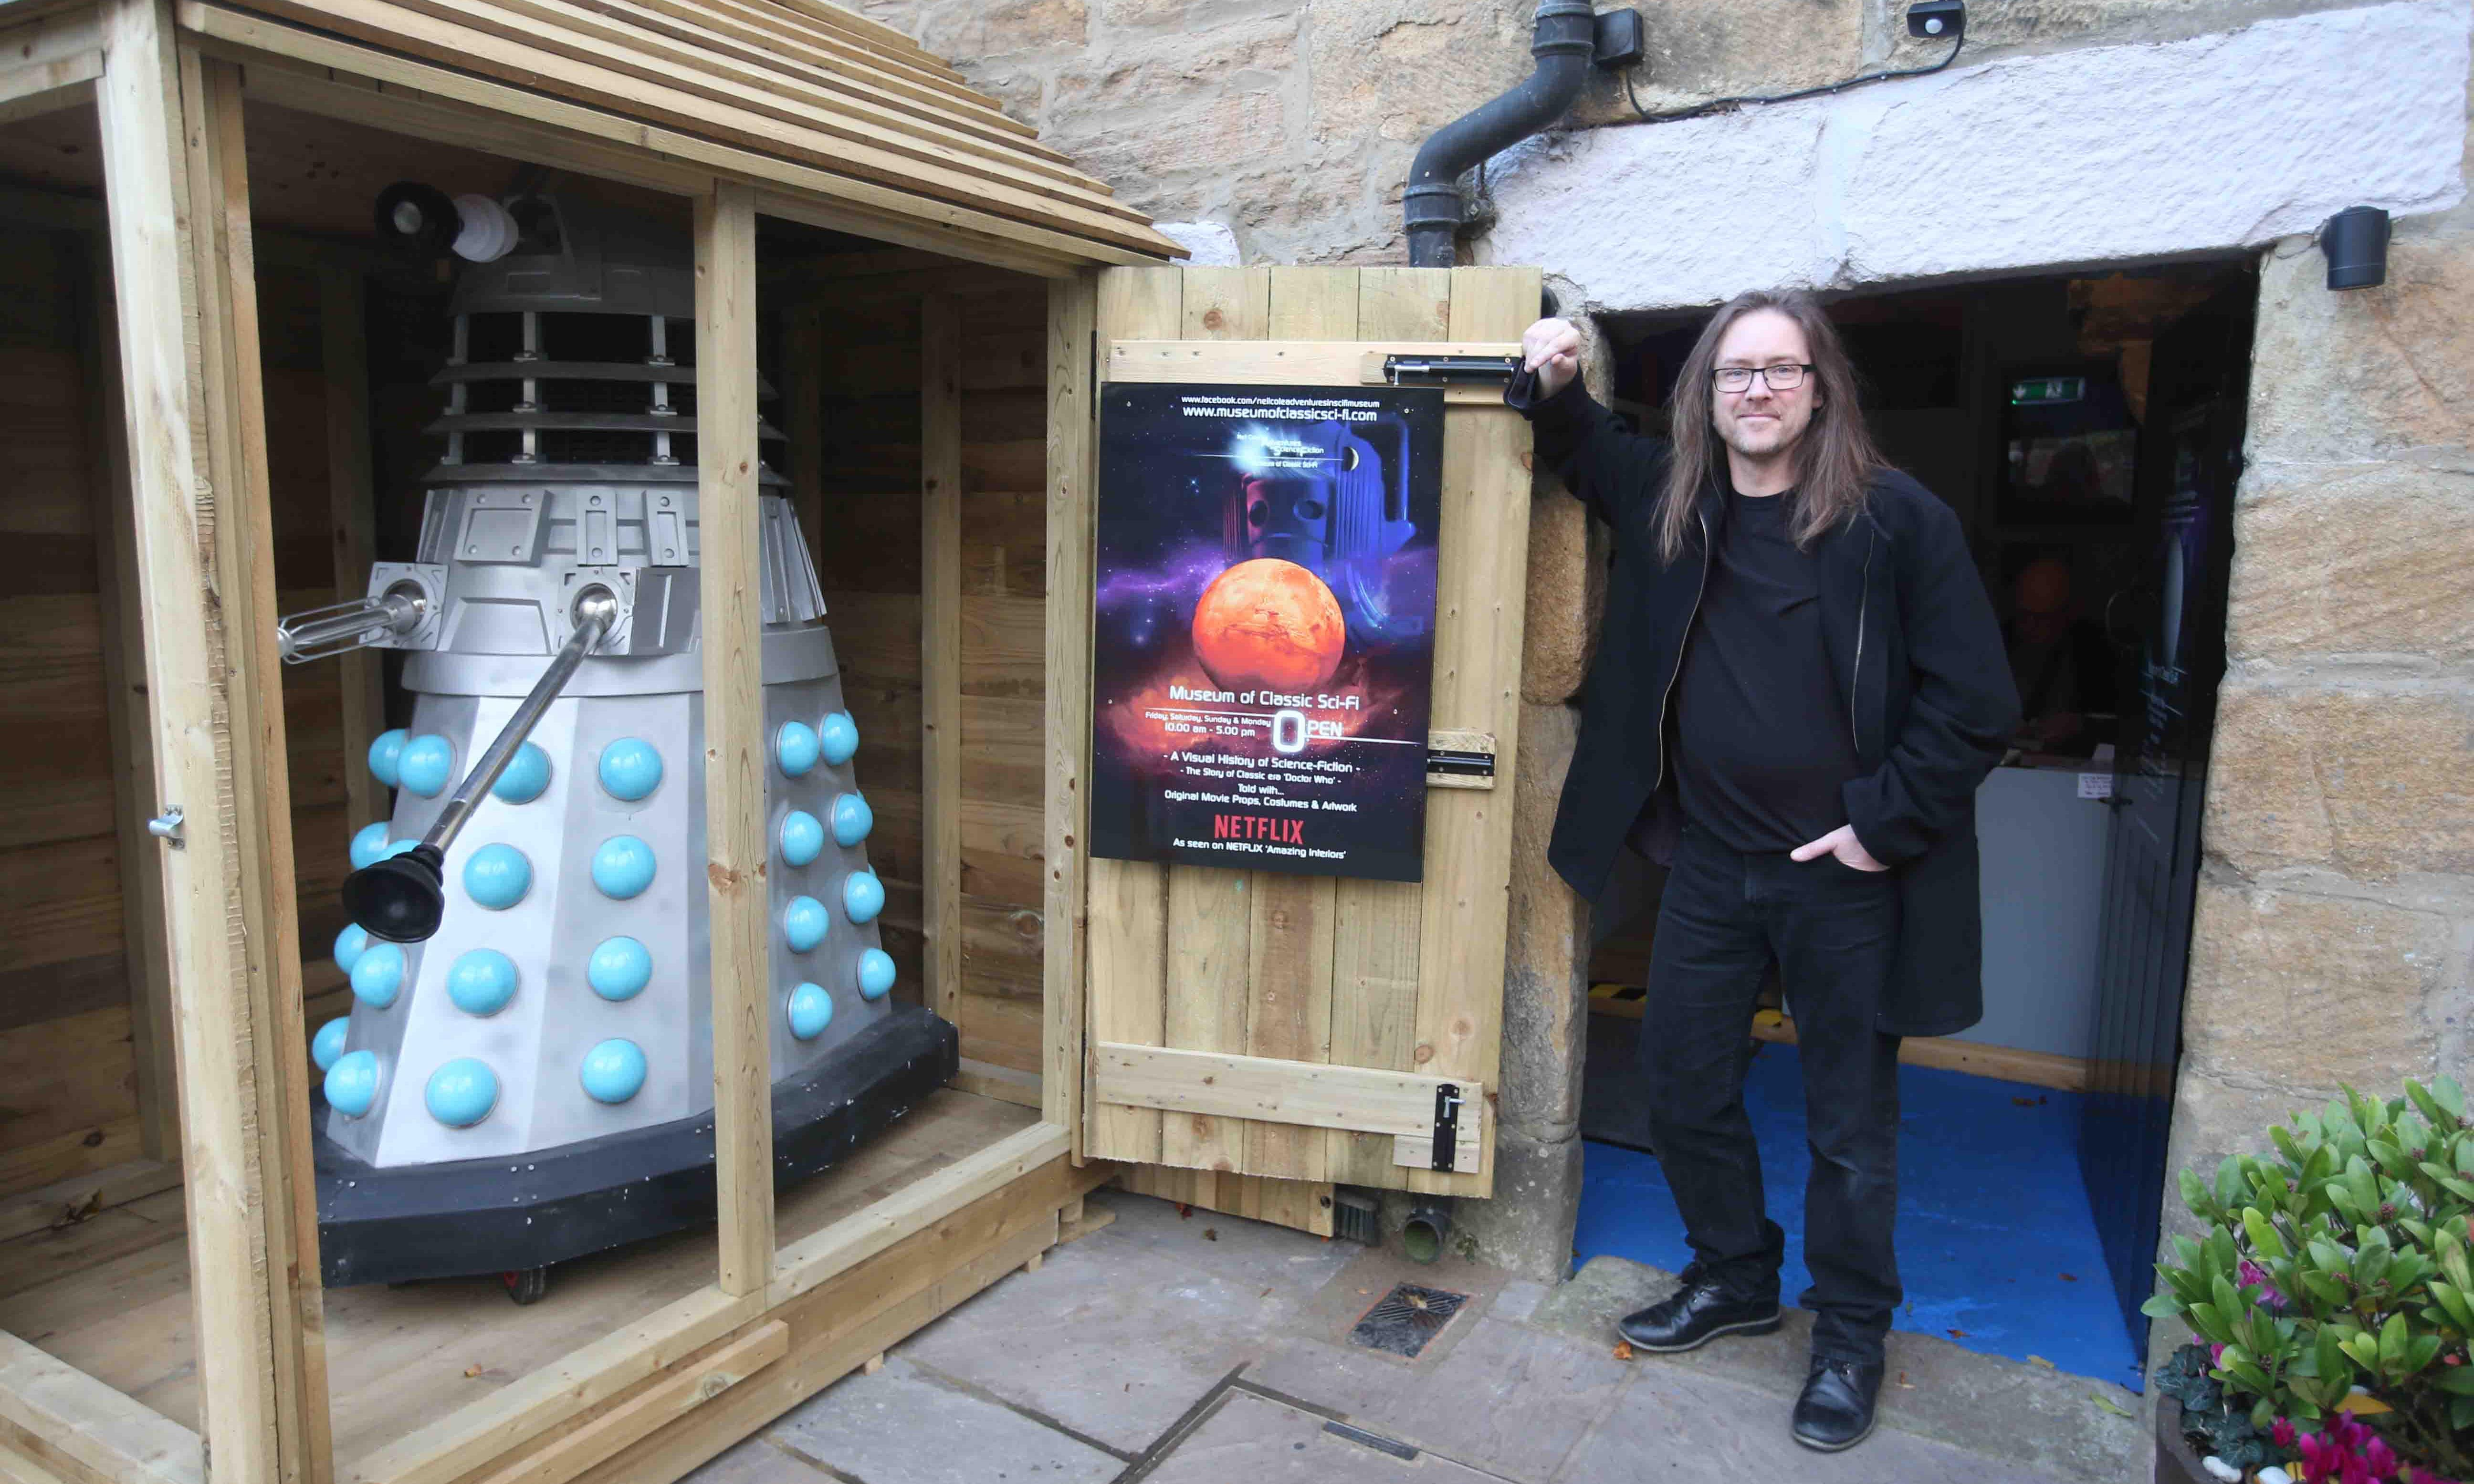 'Exterminate': man incurs wrath of council with Dalek shed